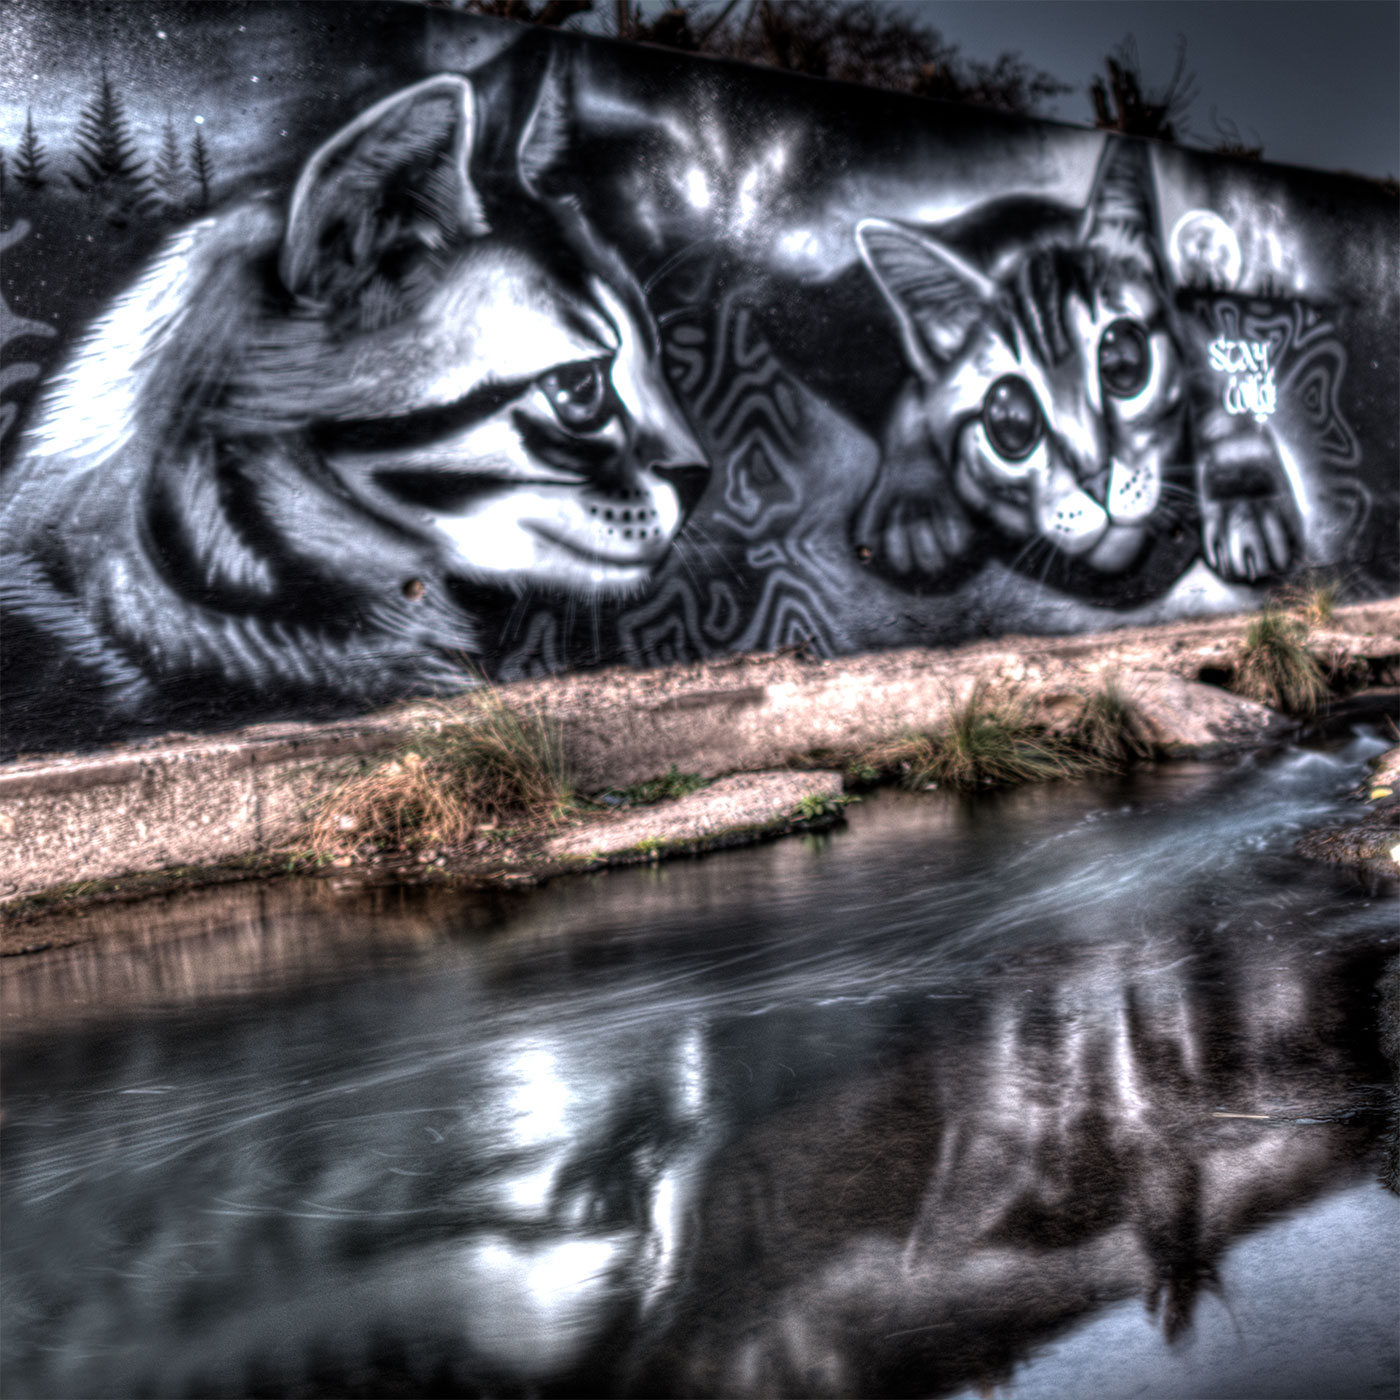 Feral cat river art.